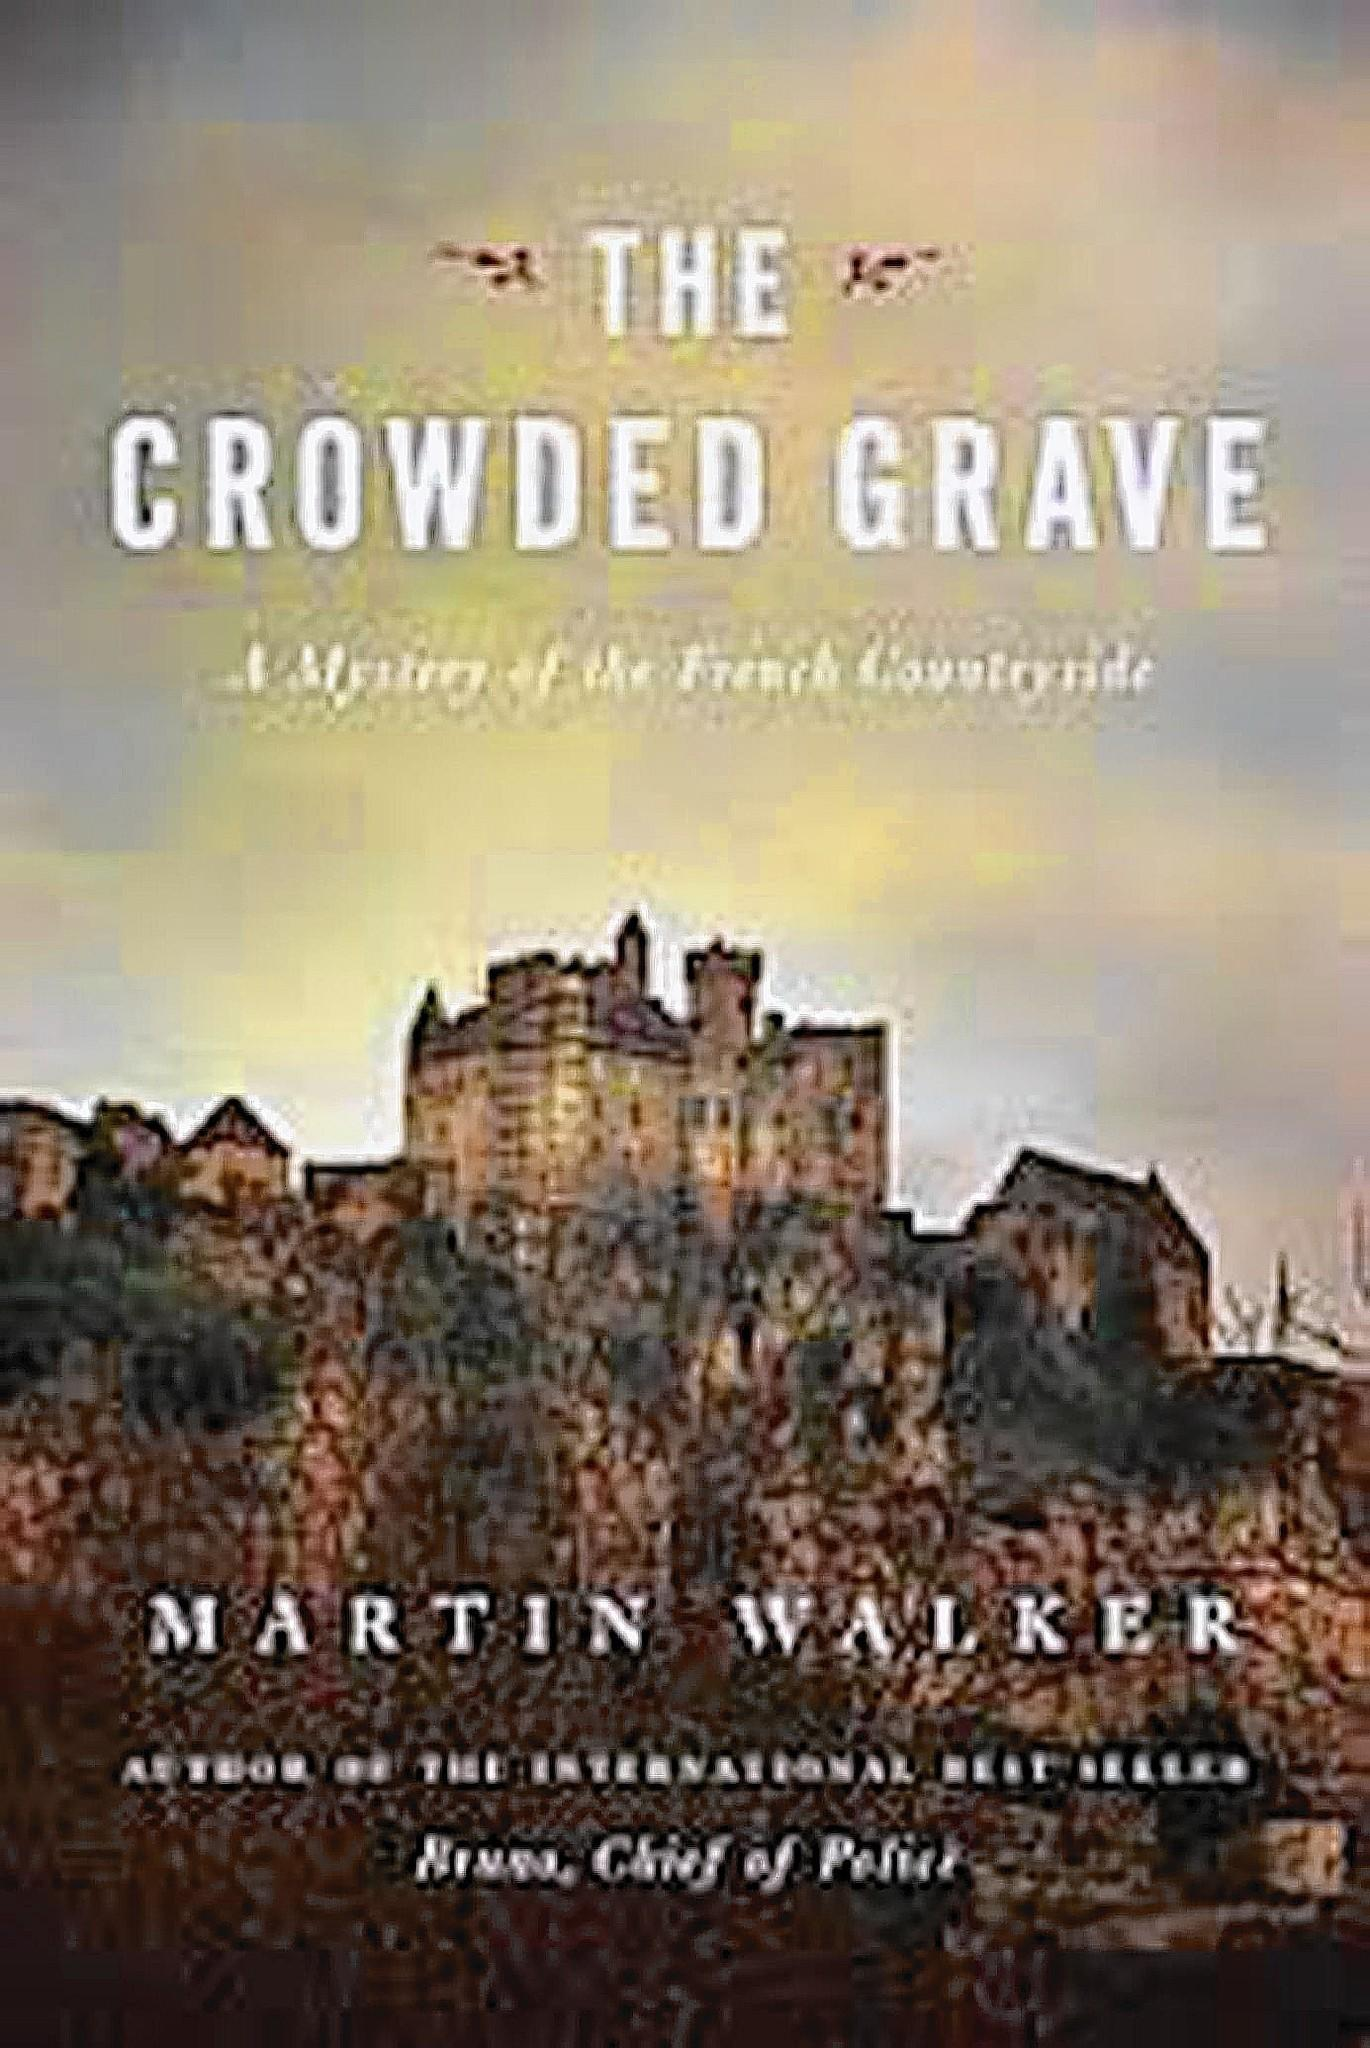 'The Crowded Grave: A Mystery of the French Countryside' by Martin Walker (Vintage $14.95)